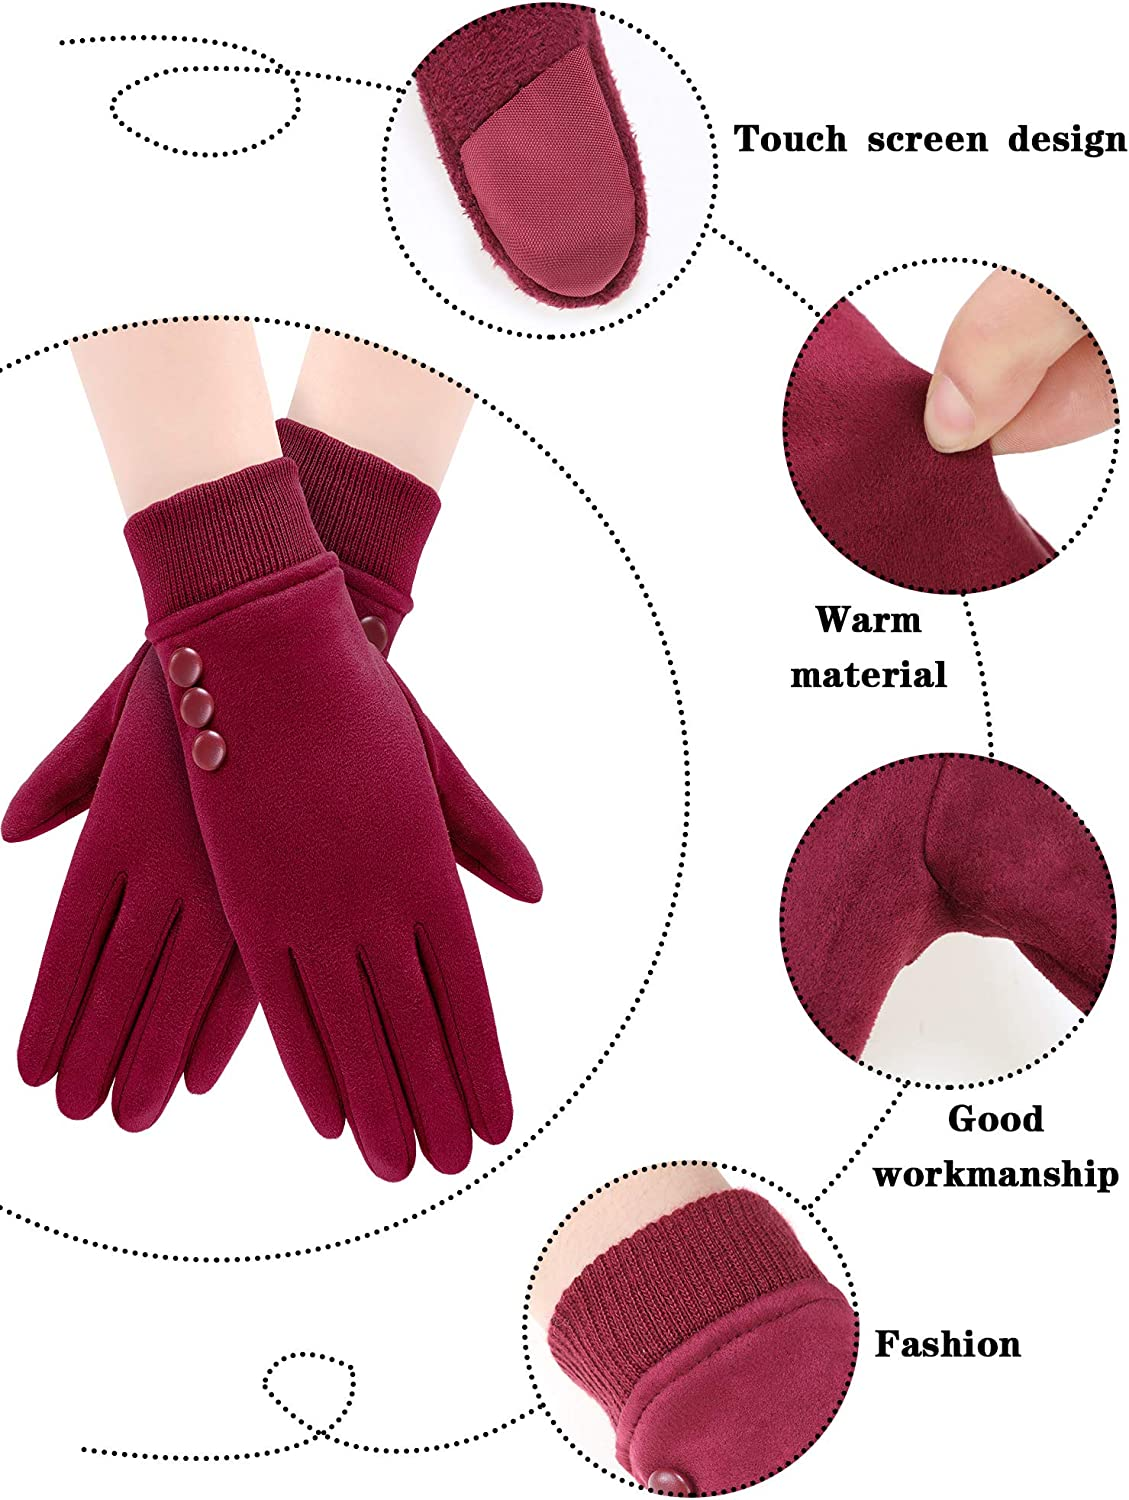 4 Pairs Women Winter Warm Gloves Touchscreen Windproof Gloves Lined Thick Gloves (Classic Colors, 3-Buttons Design)